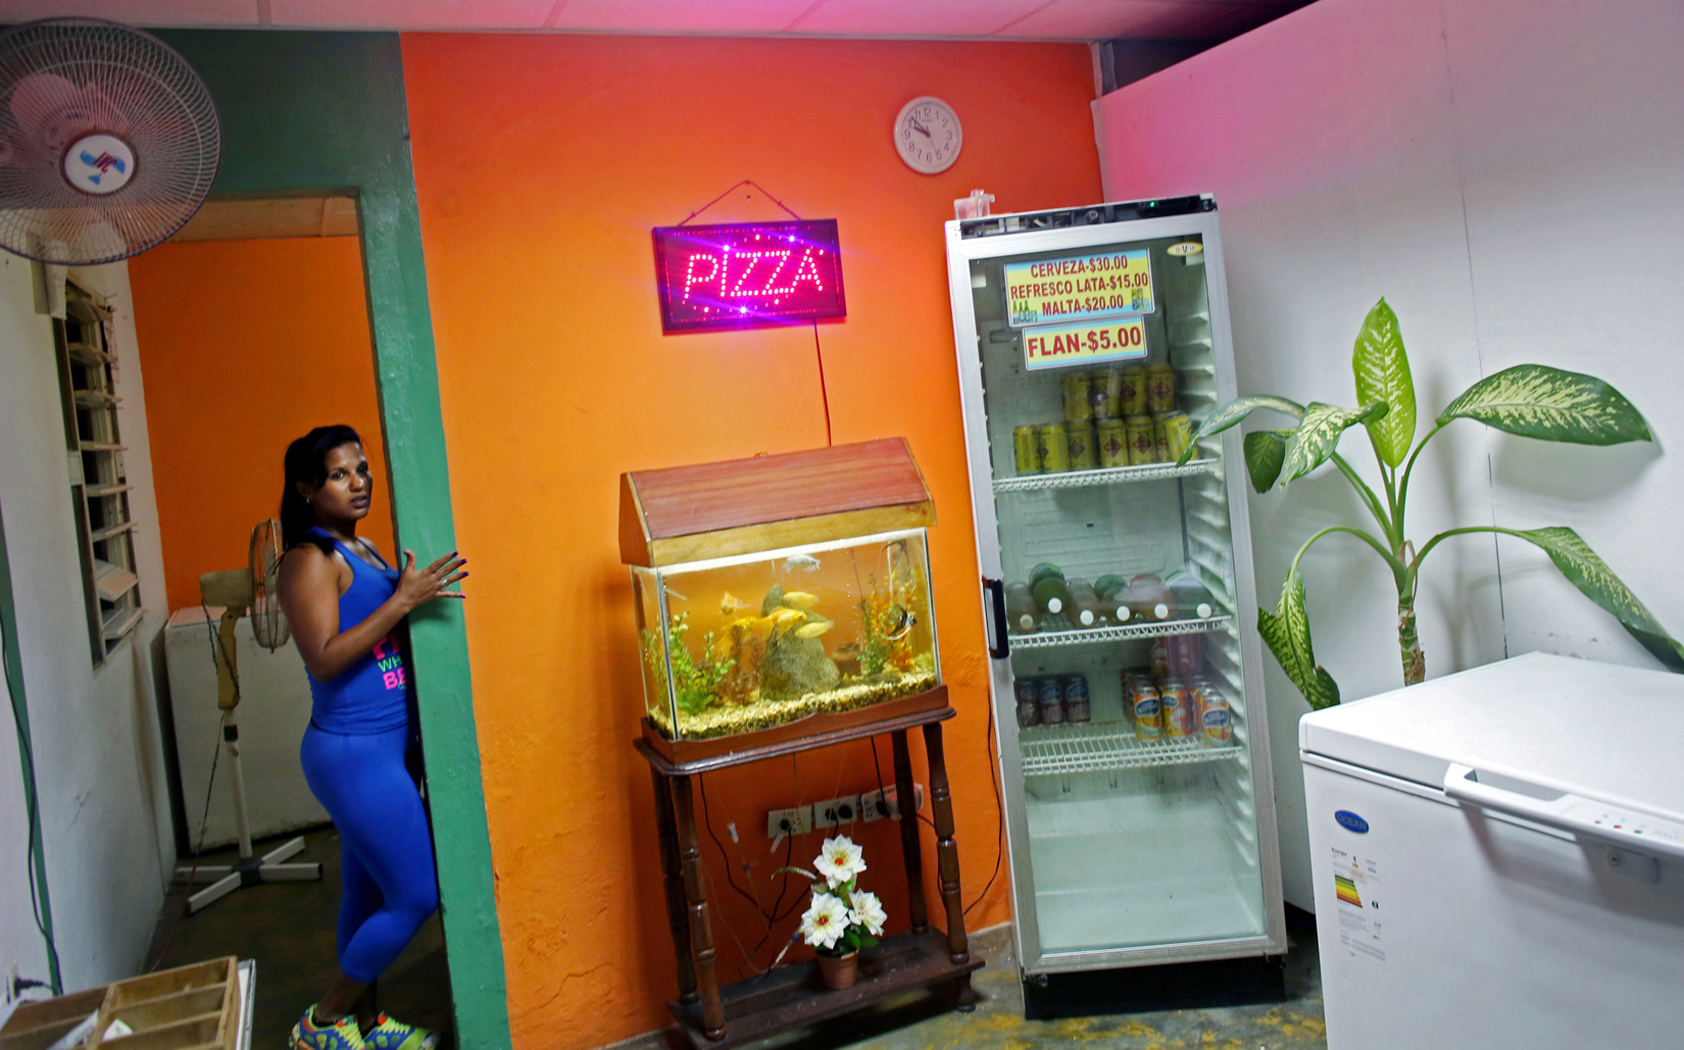 A girl takes orders in a late-night pizza joint, playing mostly American music from the 1980s and 1990s, in the port city of Mariel, Cuba, a town whose tranquil appearance belies its important place in both the history and future of Cuban-American interaction. It is where Russians unloaded nuclear warheads in the 1962 Cuban missile crisis, and the gateway through which 125,000 Miami-bound emigres fled during the Mariel Boatlift of 1980. The town is now the site of construction of a deepwater container port and a free-trade zone, a critical ingredient for which will be the future of the U.S. embargo against Cuba, in place for more than 50 years but now under speculation of being lifted. Cuba, a place of much recent conversation, is a country whose politics and way of life parallel much of my childhood in Bulgaria. This is 2015's continuation to my project on democracy + communism, started last year on the 25th anniversary of the fall of the Berlin Wall - the event that gave opportunity to Eastern Europeans like me to immigrate to the Western world. These are the ways in which Cuba has transported me to pre- and post-1989 Bulgaria.